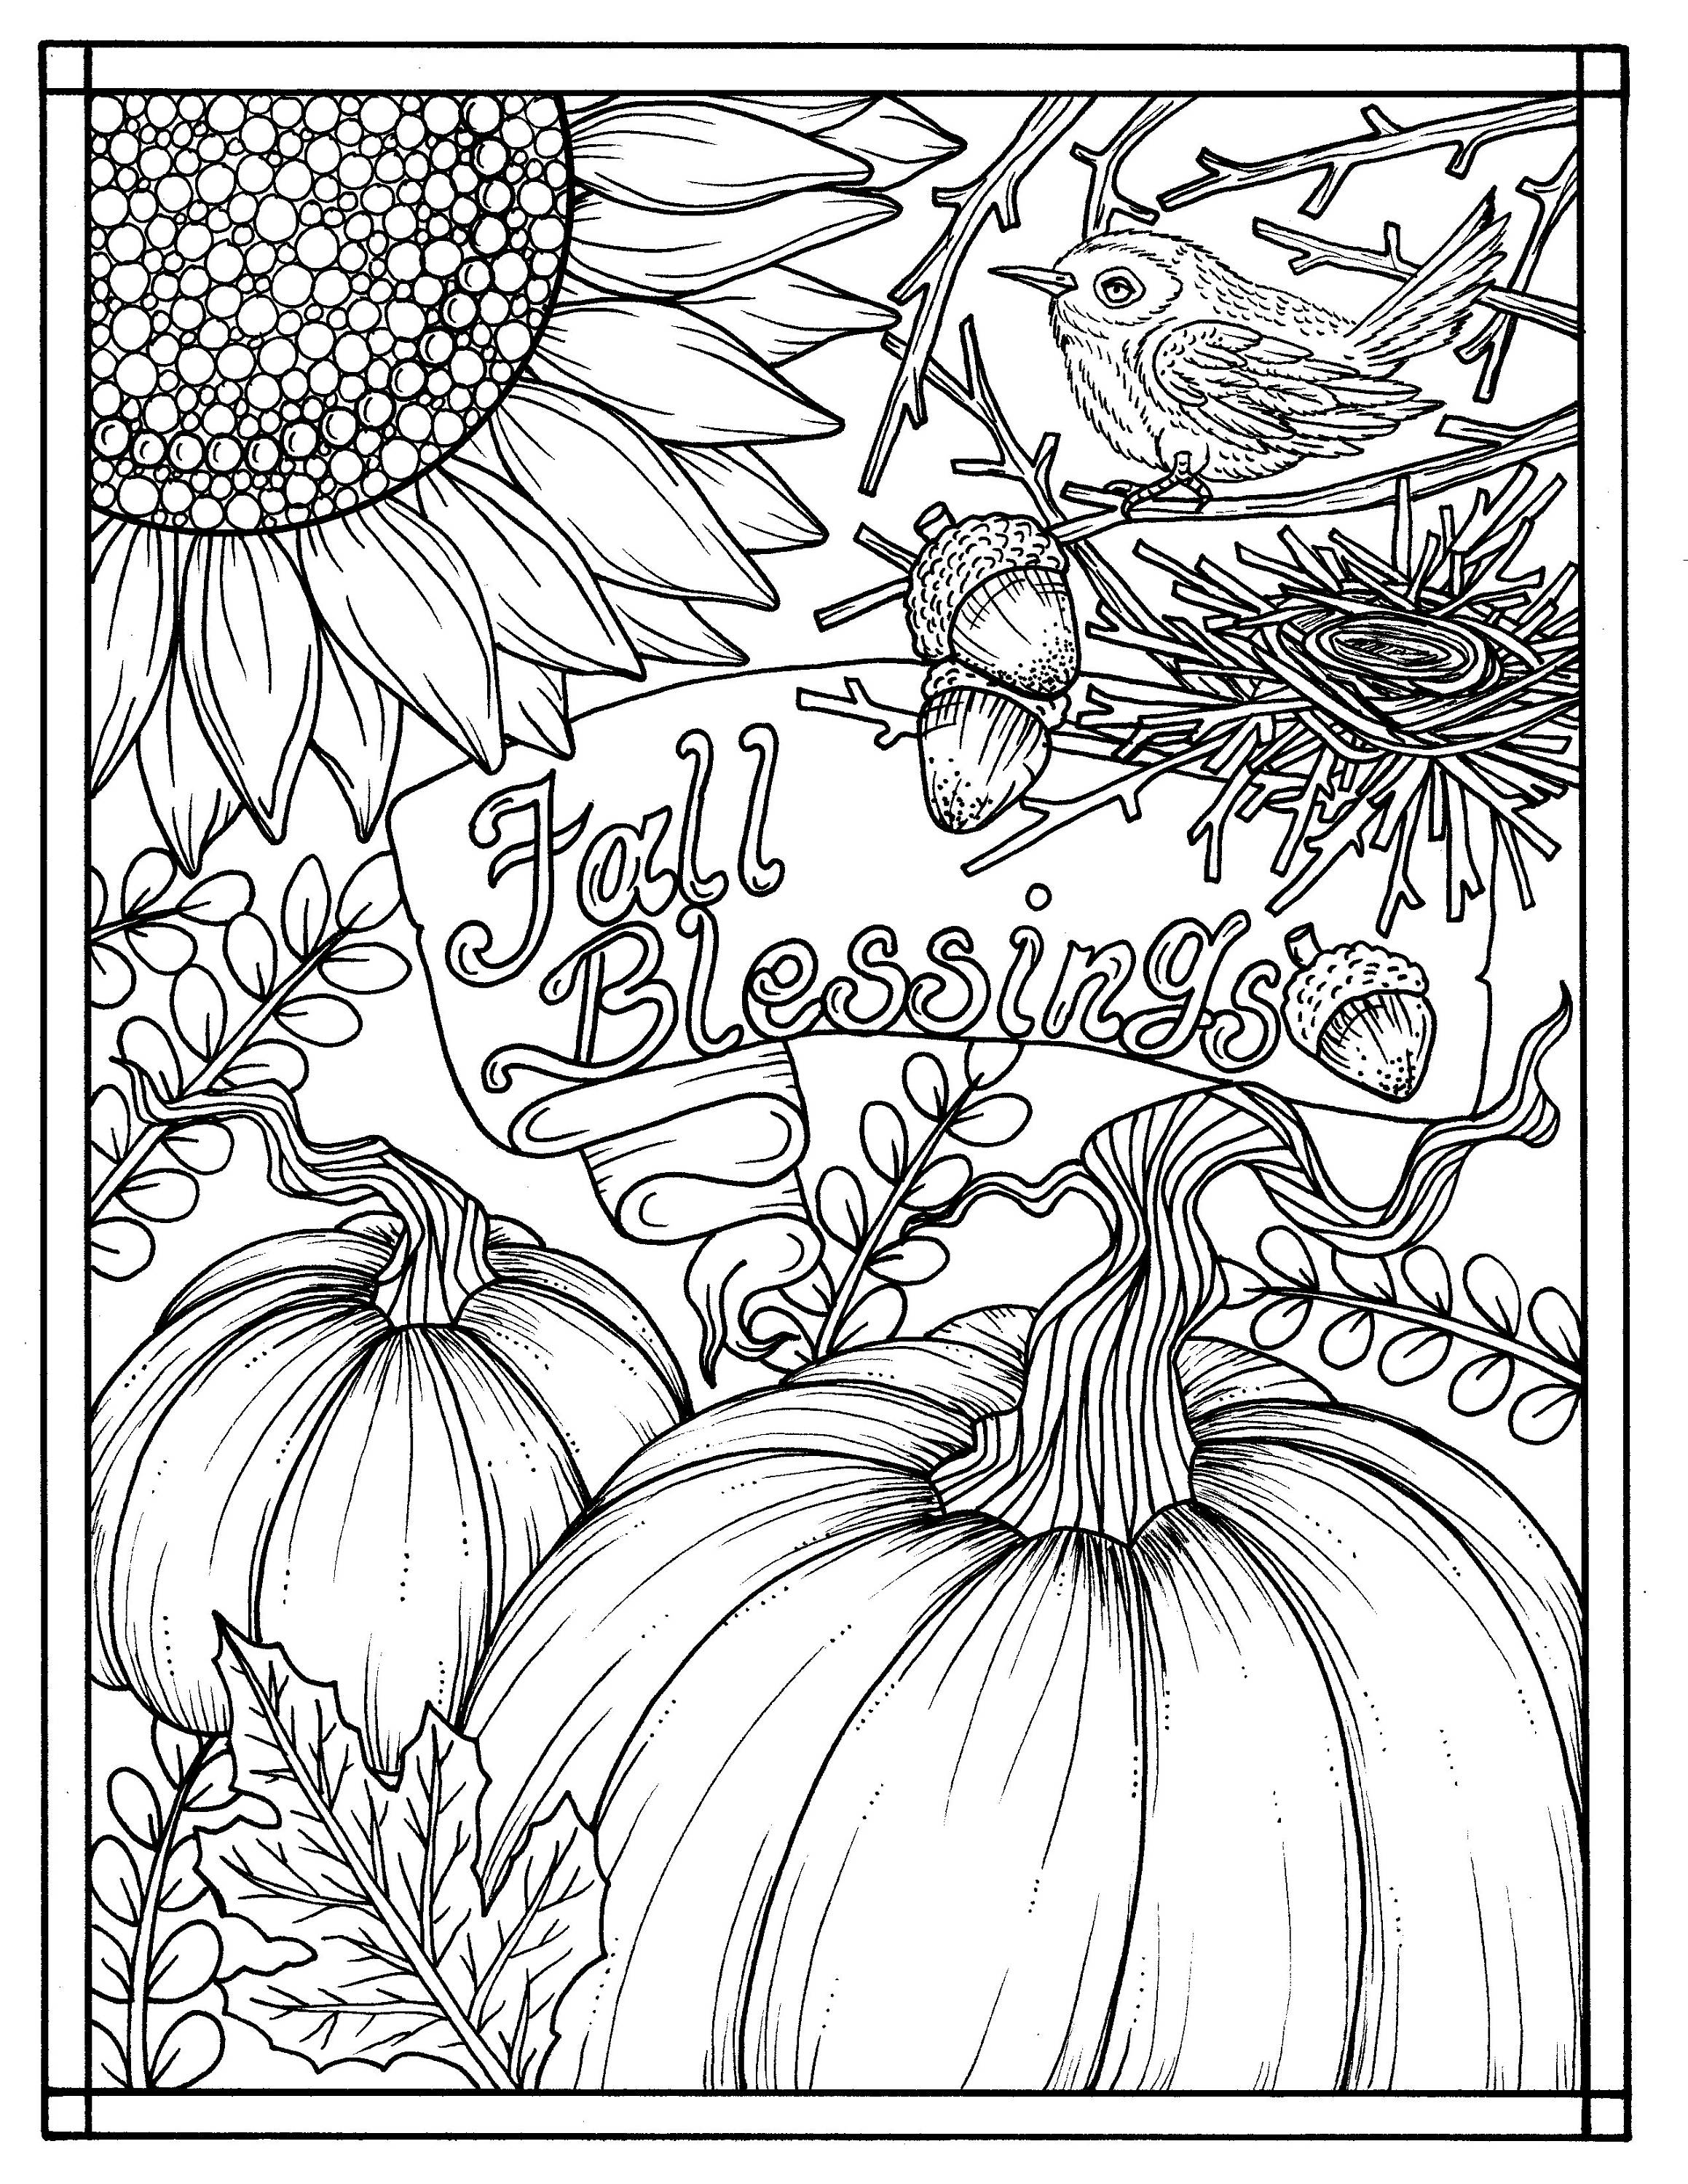 free autumn coloring pages for adults | Download Fall Blessings Instant digital Coloring page ...